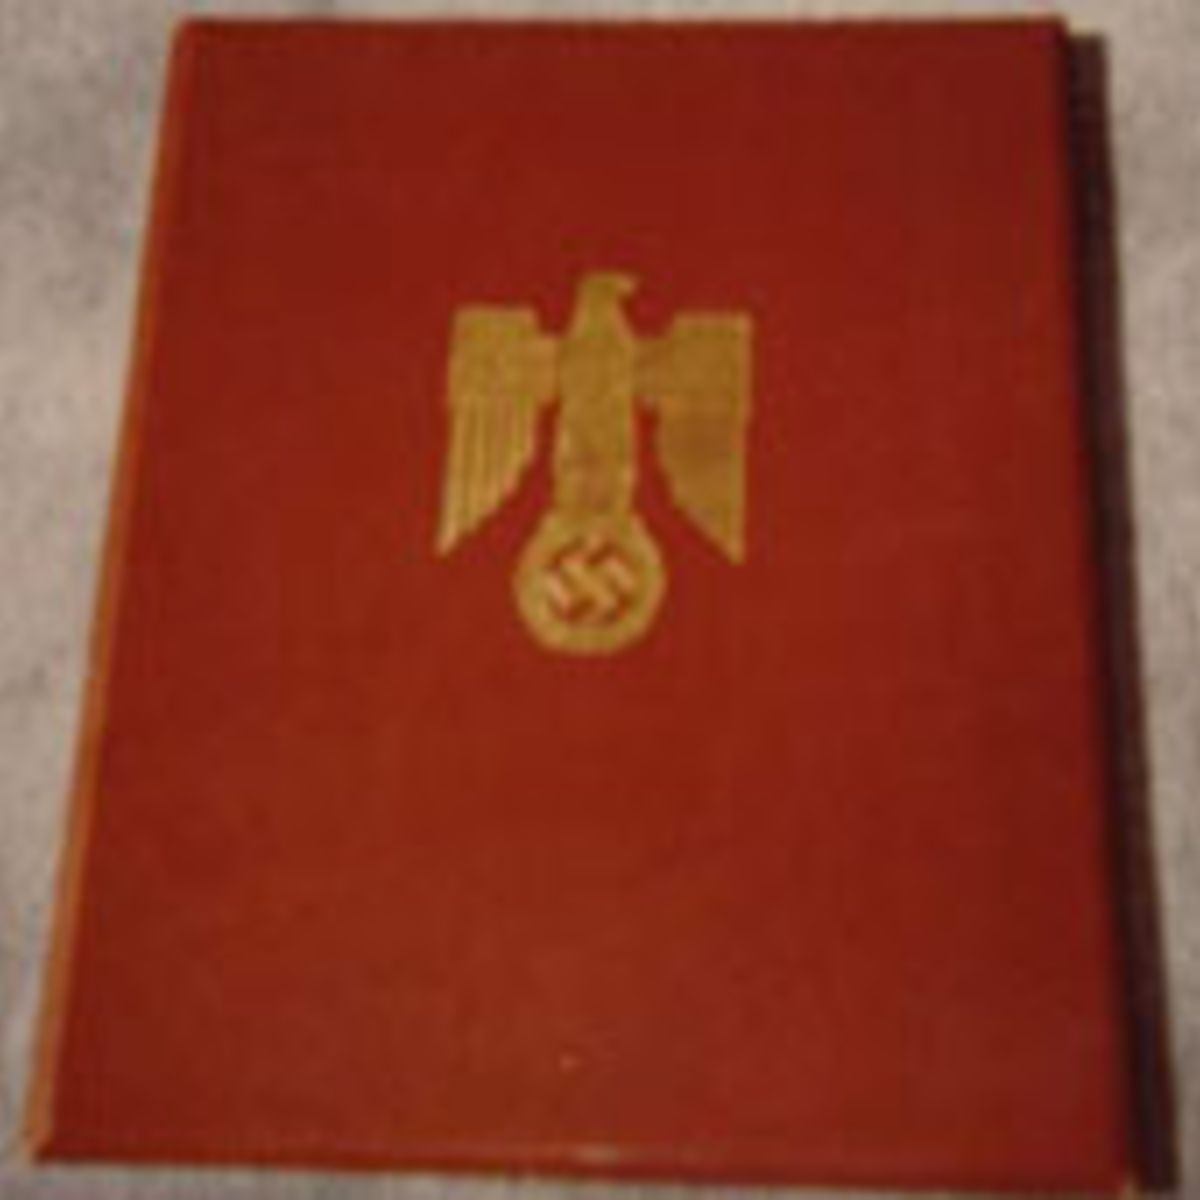 NAZI KNIGHTS CROSS OF THE IRON CROSS DOCUMENT--PARCHMENT DOUBLE PAGE DOCUMENT. AWARD FOLDER IS RED LEATHER WITH GOLD EMBOSSED EAGLE ON FRONT.